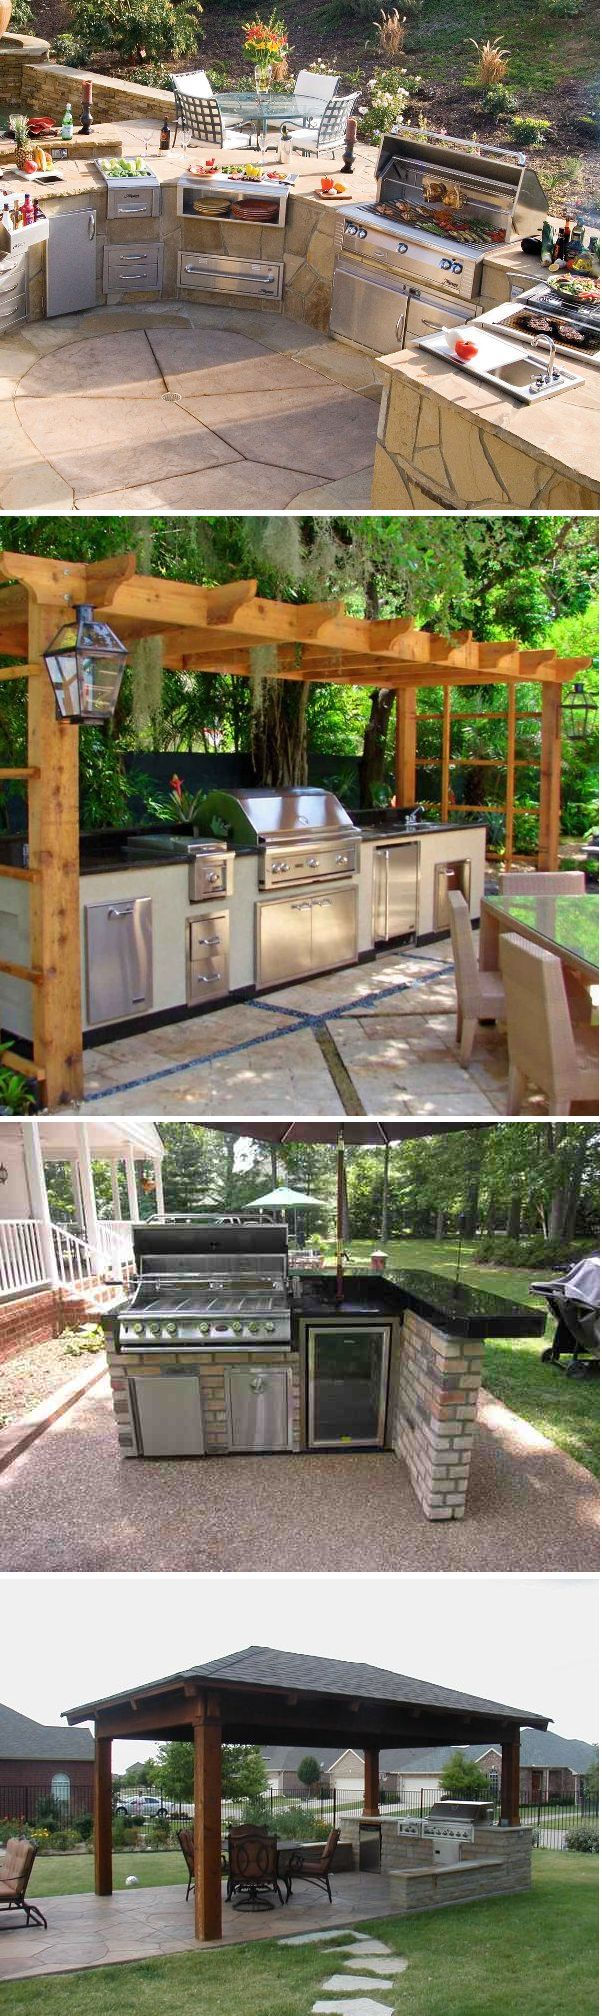 Outdoor Grill Design Ideas the best covered outdoor kitchen ideas and designs 25 Best Ideas About Outdoor Kitchen Design On Pinterest Backyard Kitchen Outdoor Kitchen Bars And Outdoor Island